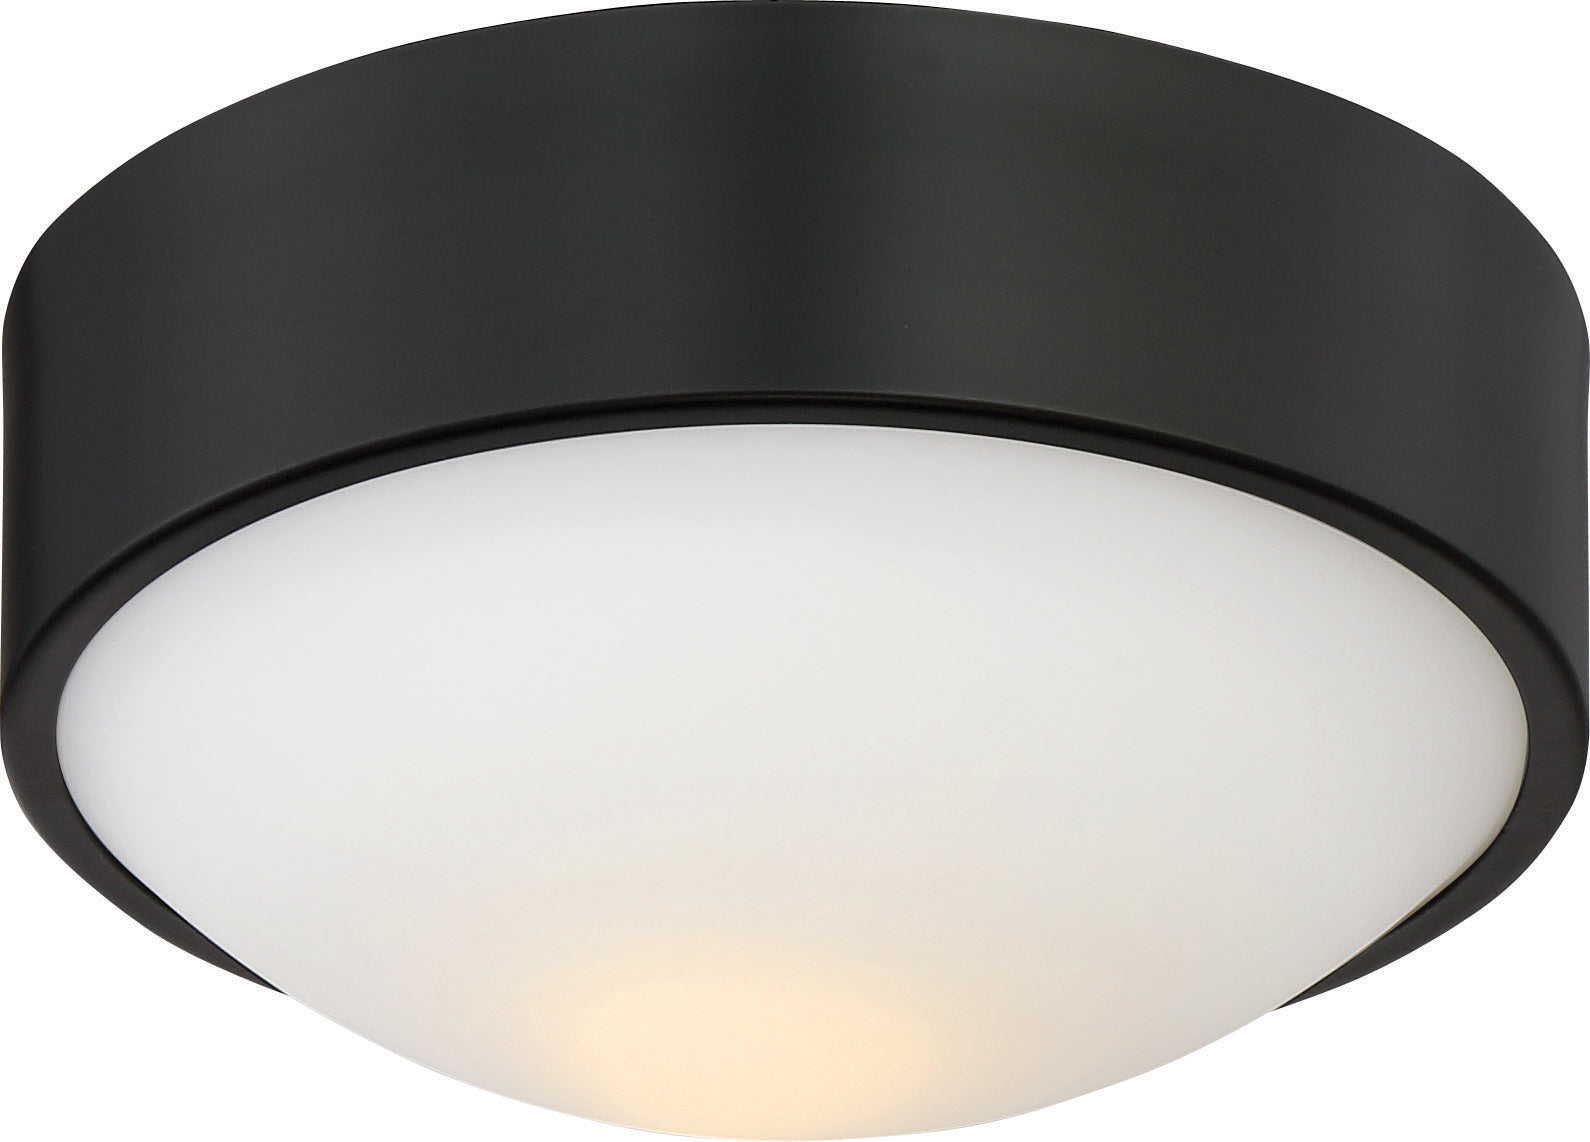 """Nuvo Perk 9"""" LED Flush Mount Fixture w/ White Glass in Aged Bronze Finish"""